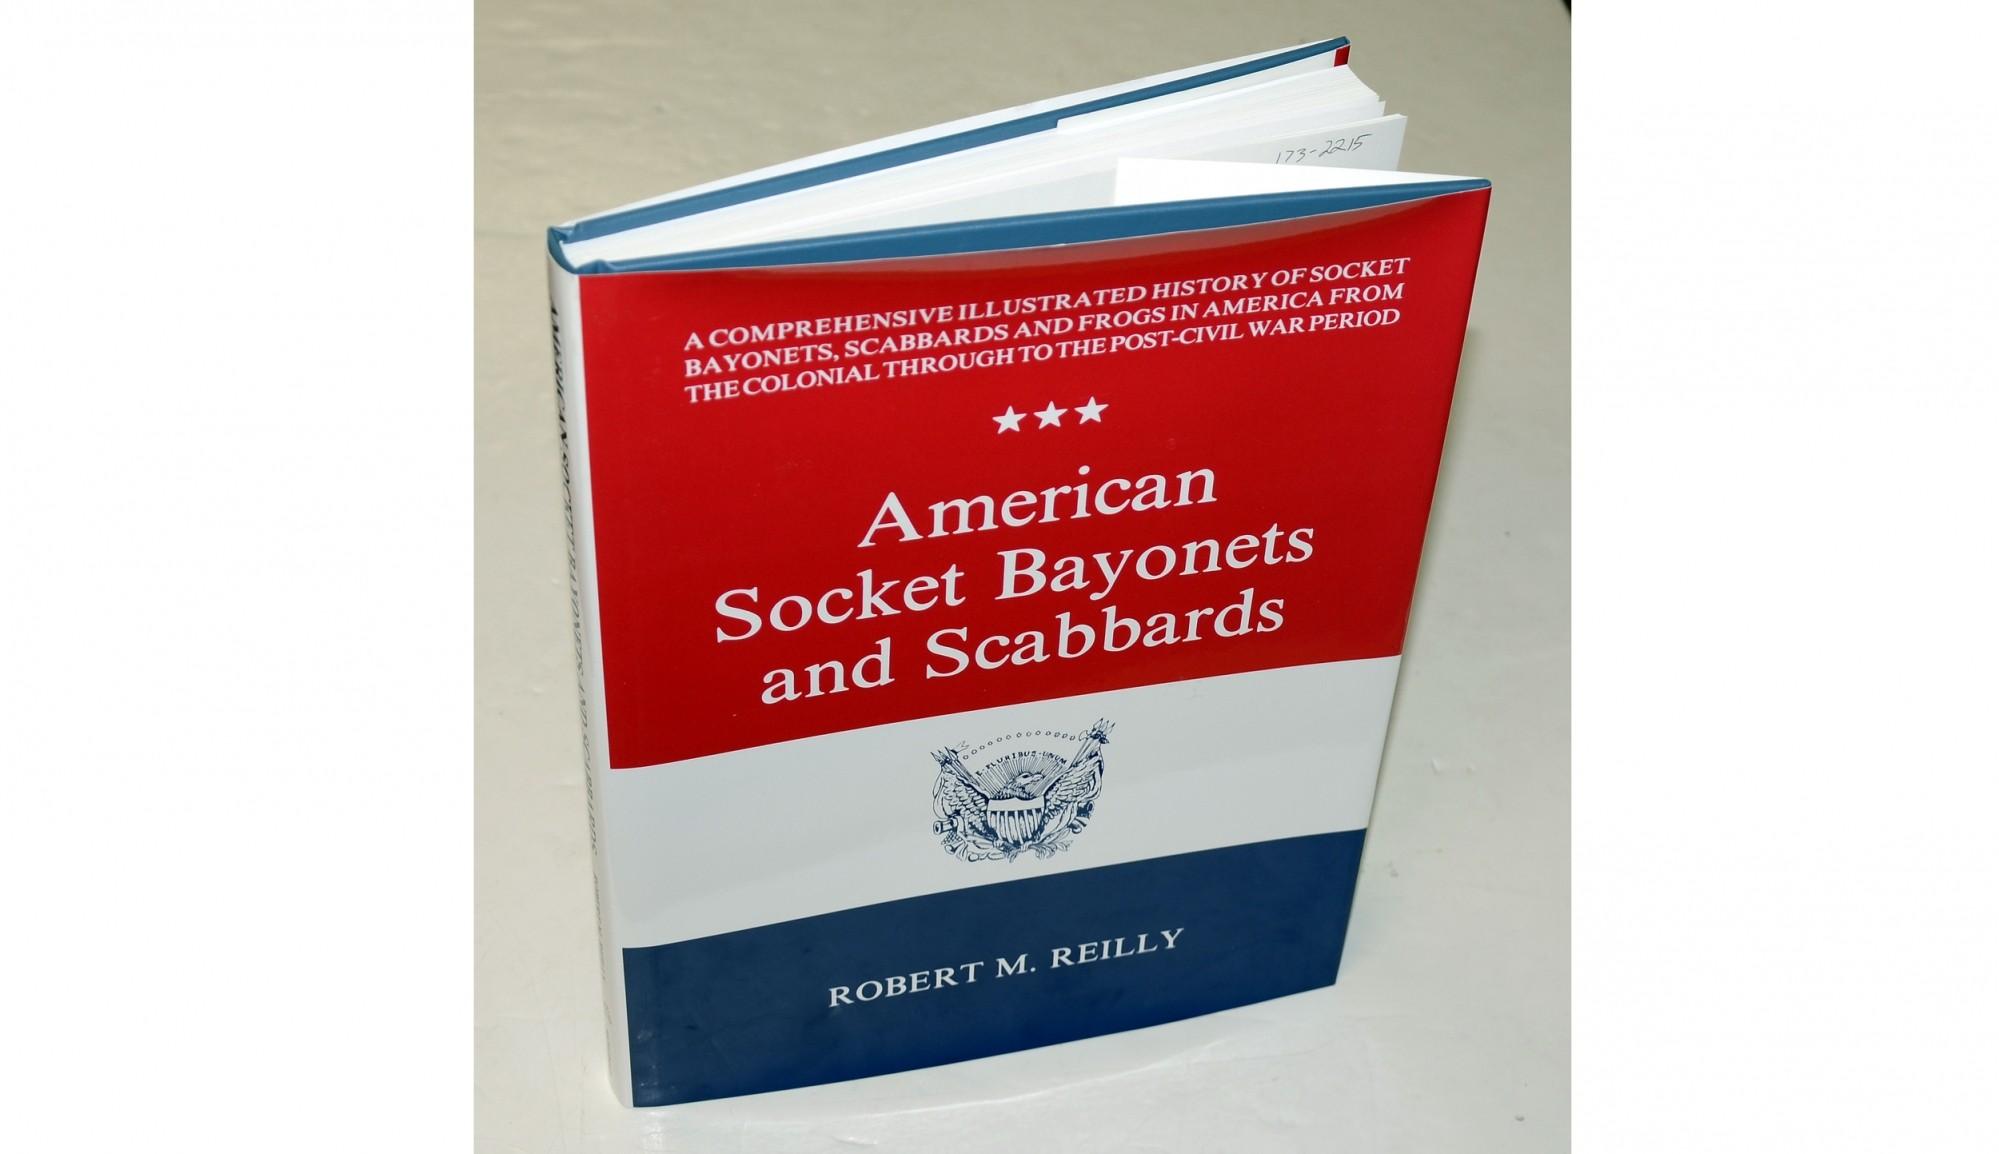 <i>AMERICAN SOCKET BAYONETS AND SCABBARDS</I> BY ROBERT M. REILLY